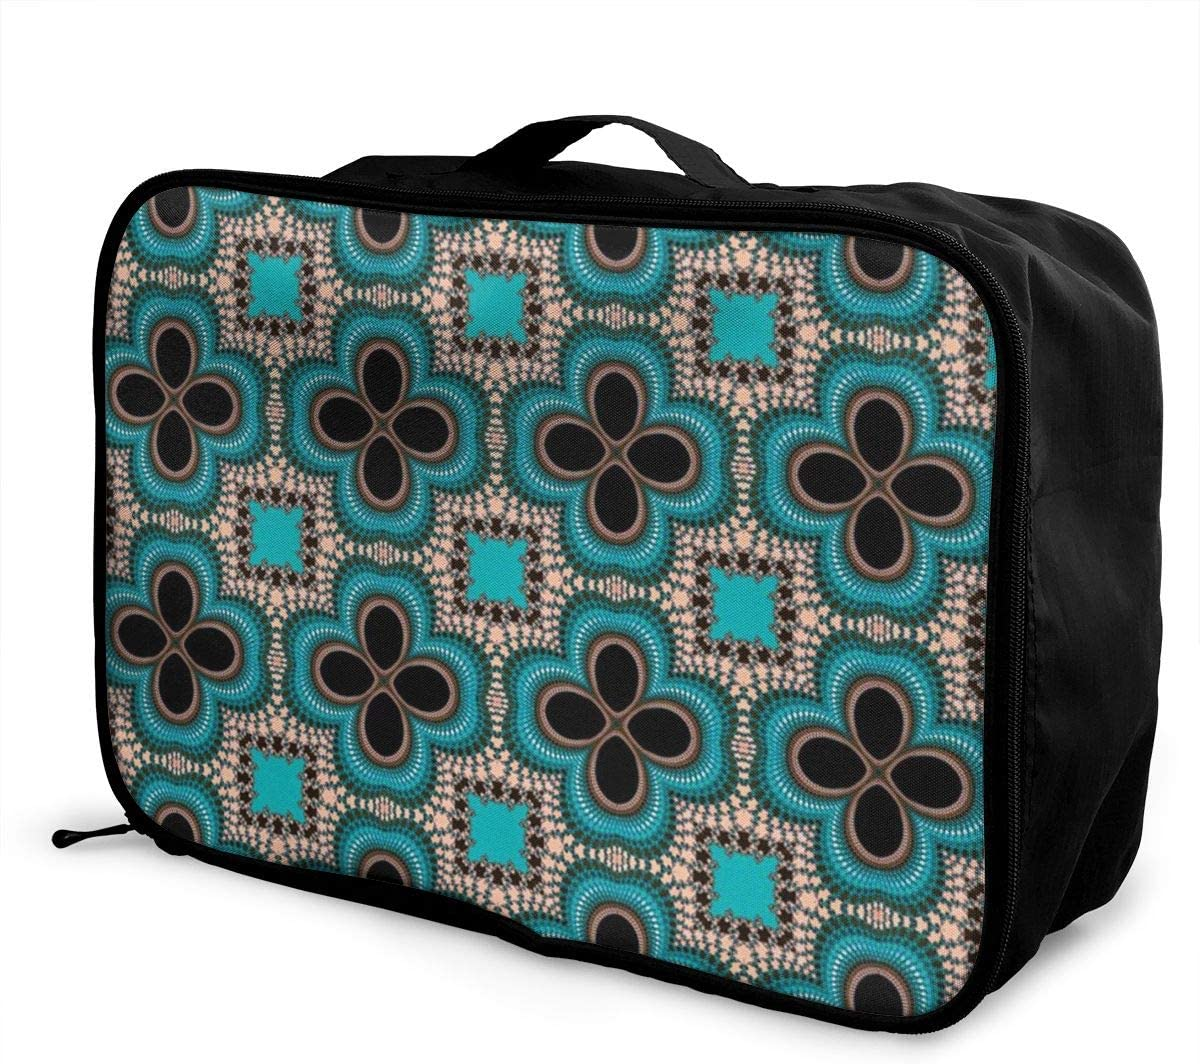 Yunshm Seamless Wallpaper Pattern Ornament Symmetry Customized Trolley Handbag Waterproof Unisex Large Capacity For Business Travel Storage